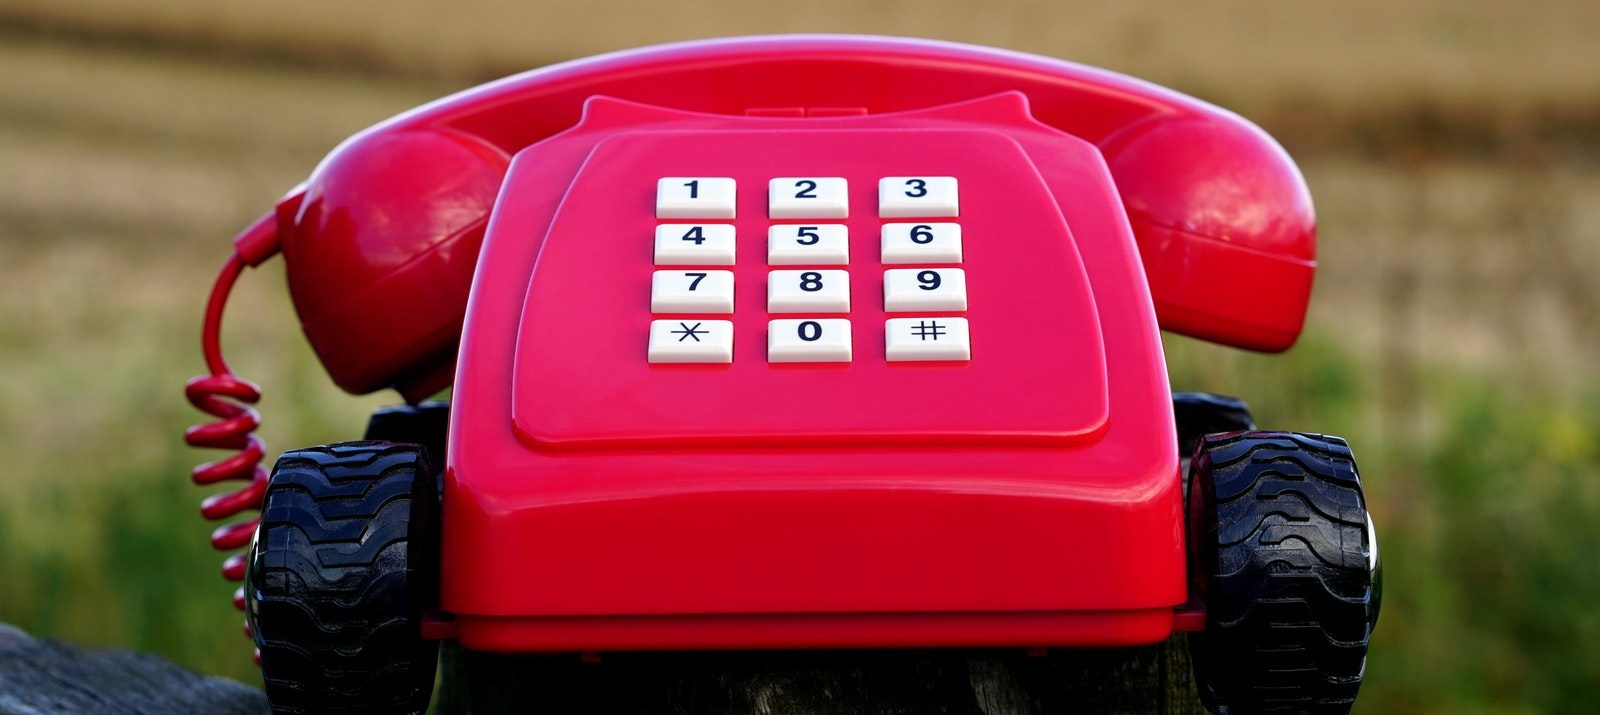 how to switch utilities and services when moving: red vintage phone on wheels